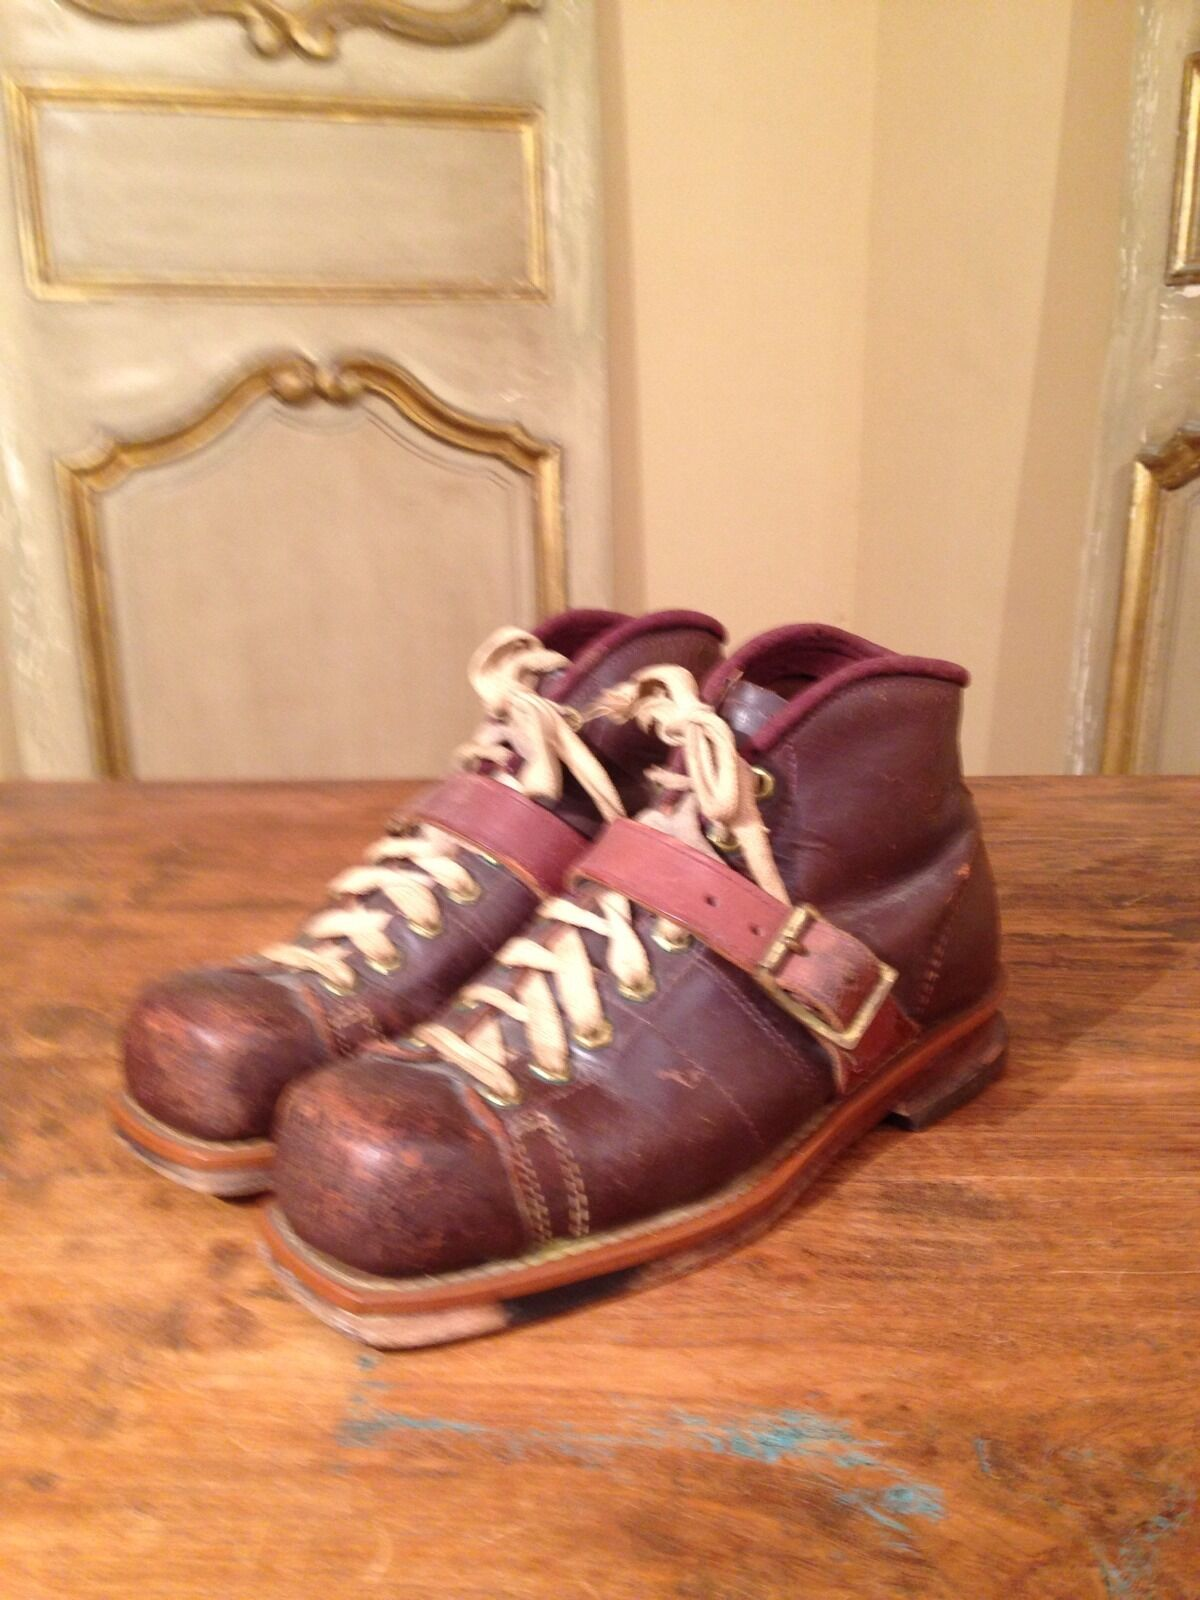 VTG WWII Military Boots Mountaineering Hiking Ski Boots Rare  Mens  9